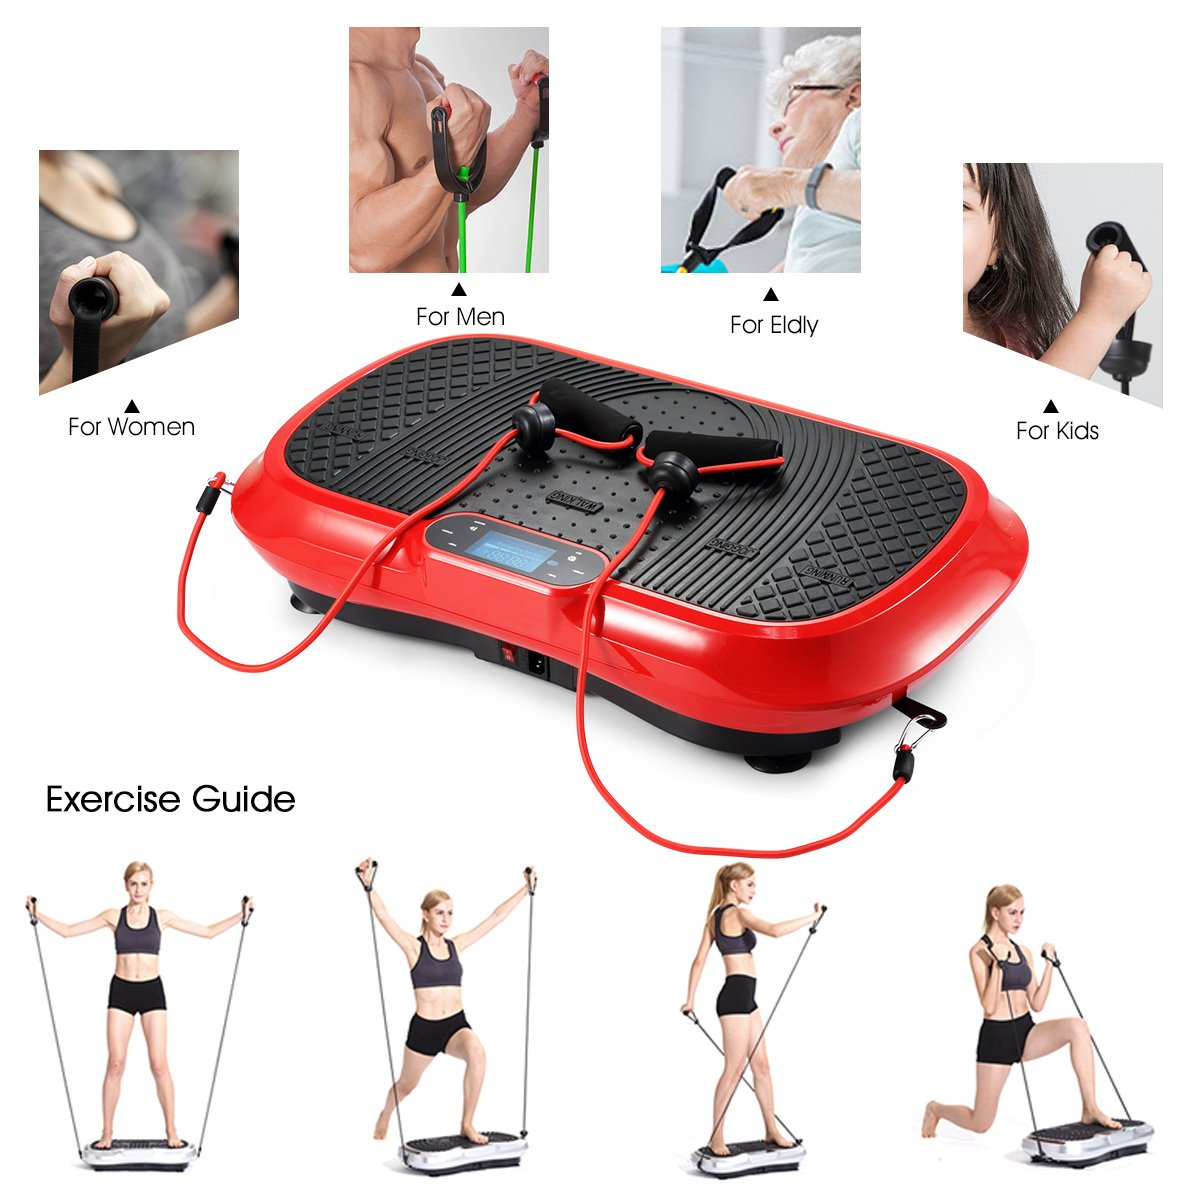 GENKI YD-1010B-R Ultra Slim Vibration Machine Plate Platform Whole Body Shaper Trainer Exercise Red by GENKI (Image #5)